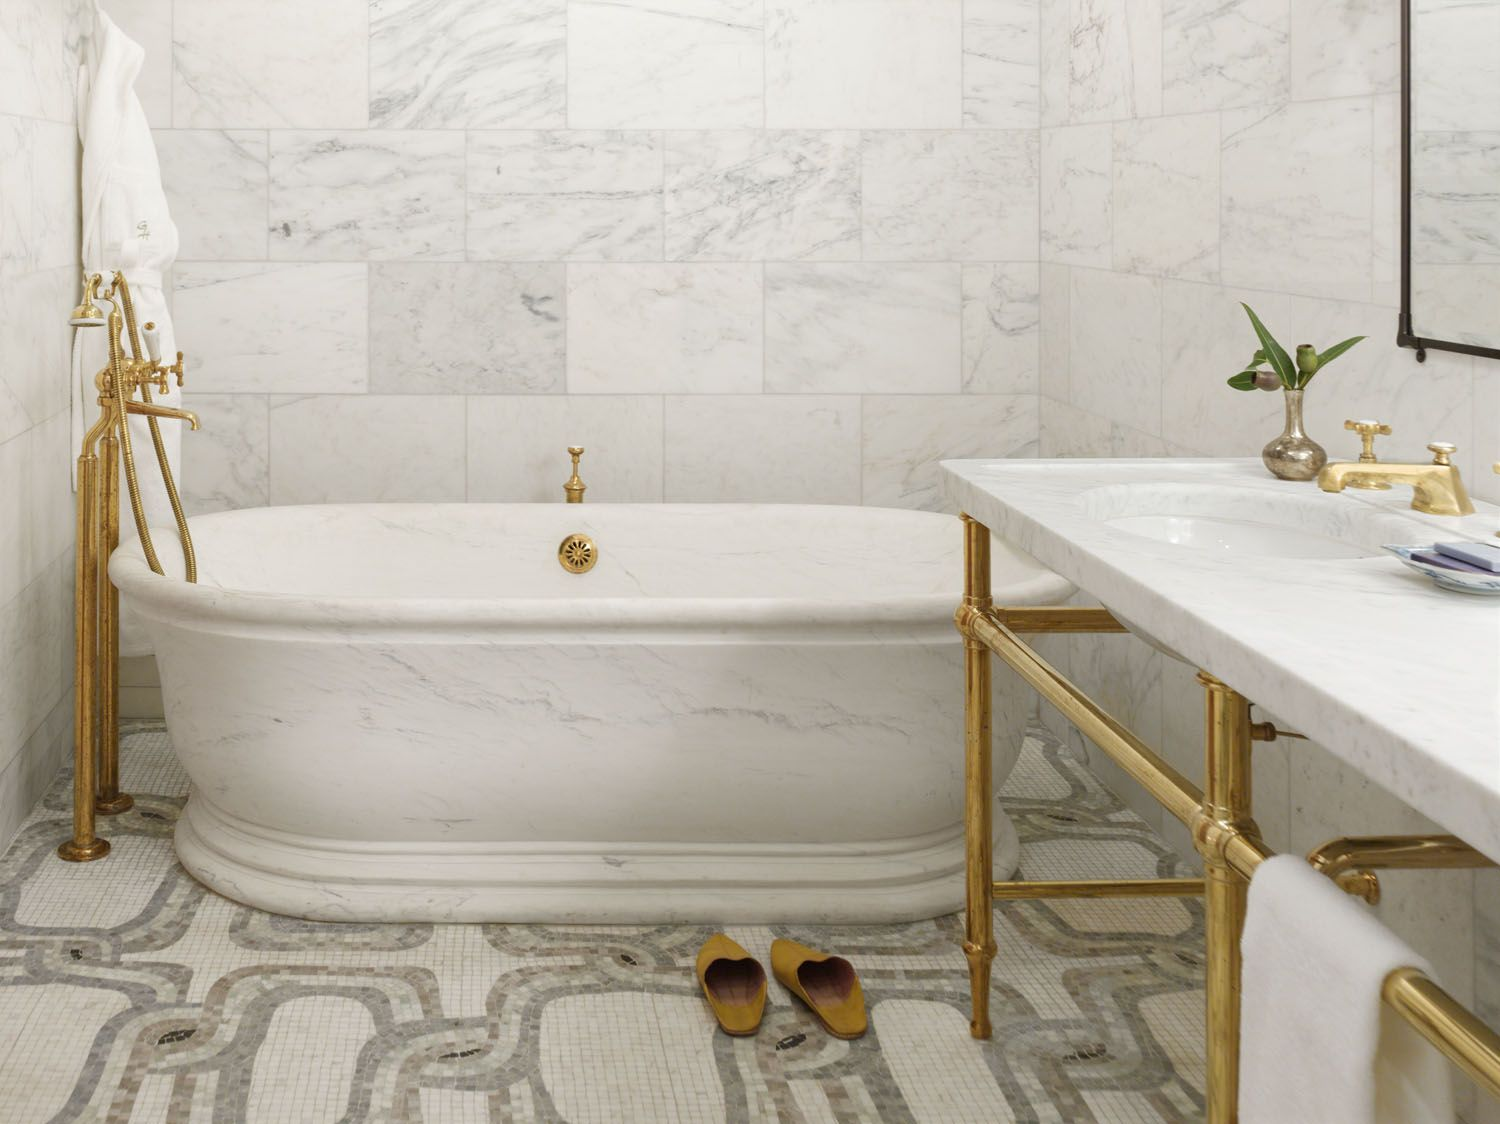 Beautiful Brass | Pinterest | Marble tiles, Bath tubs and White marble